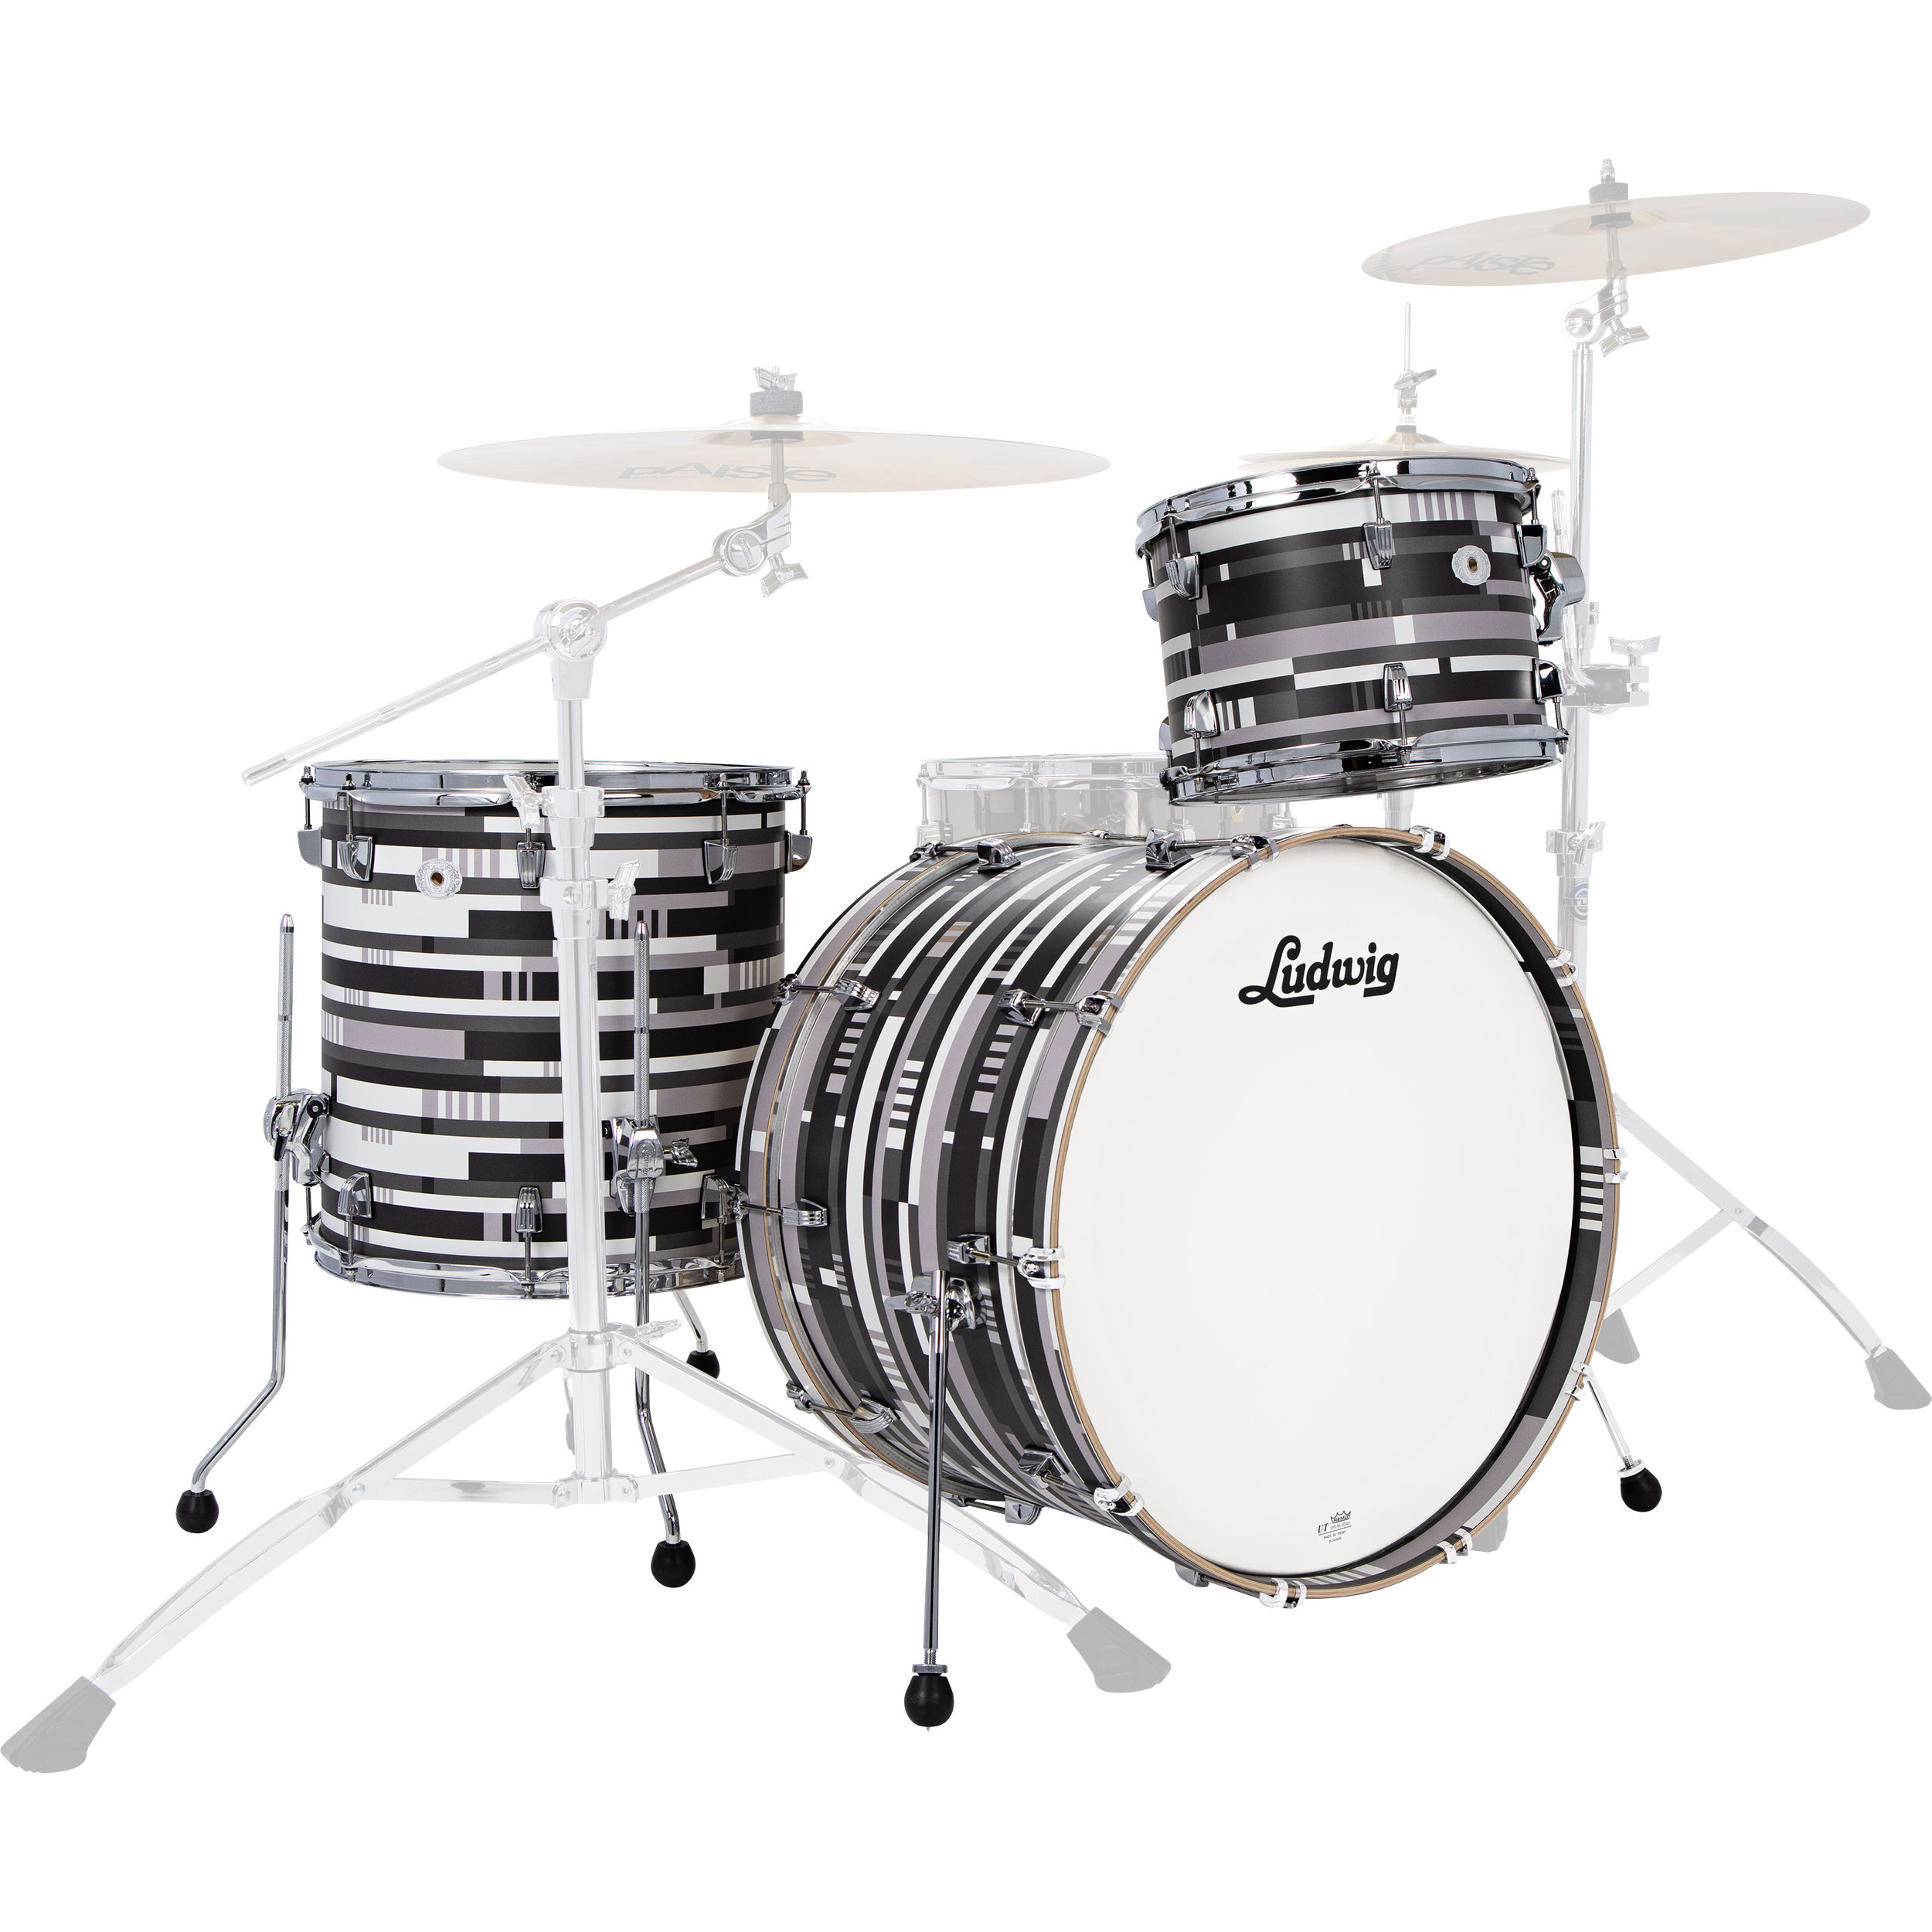 "Ludwig Limited Edition Neusonic 3-Piece FAB Drum Set Shell Pack (22"" Bass, 13/16"" Toms) in Digital Black Oyster"